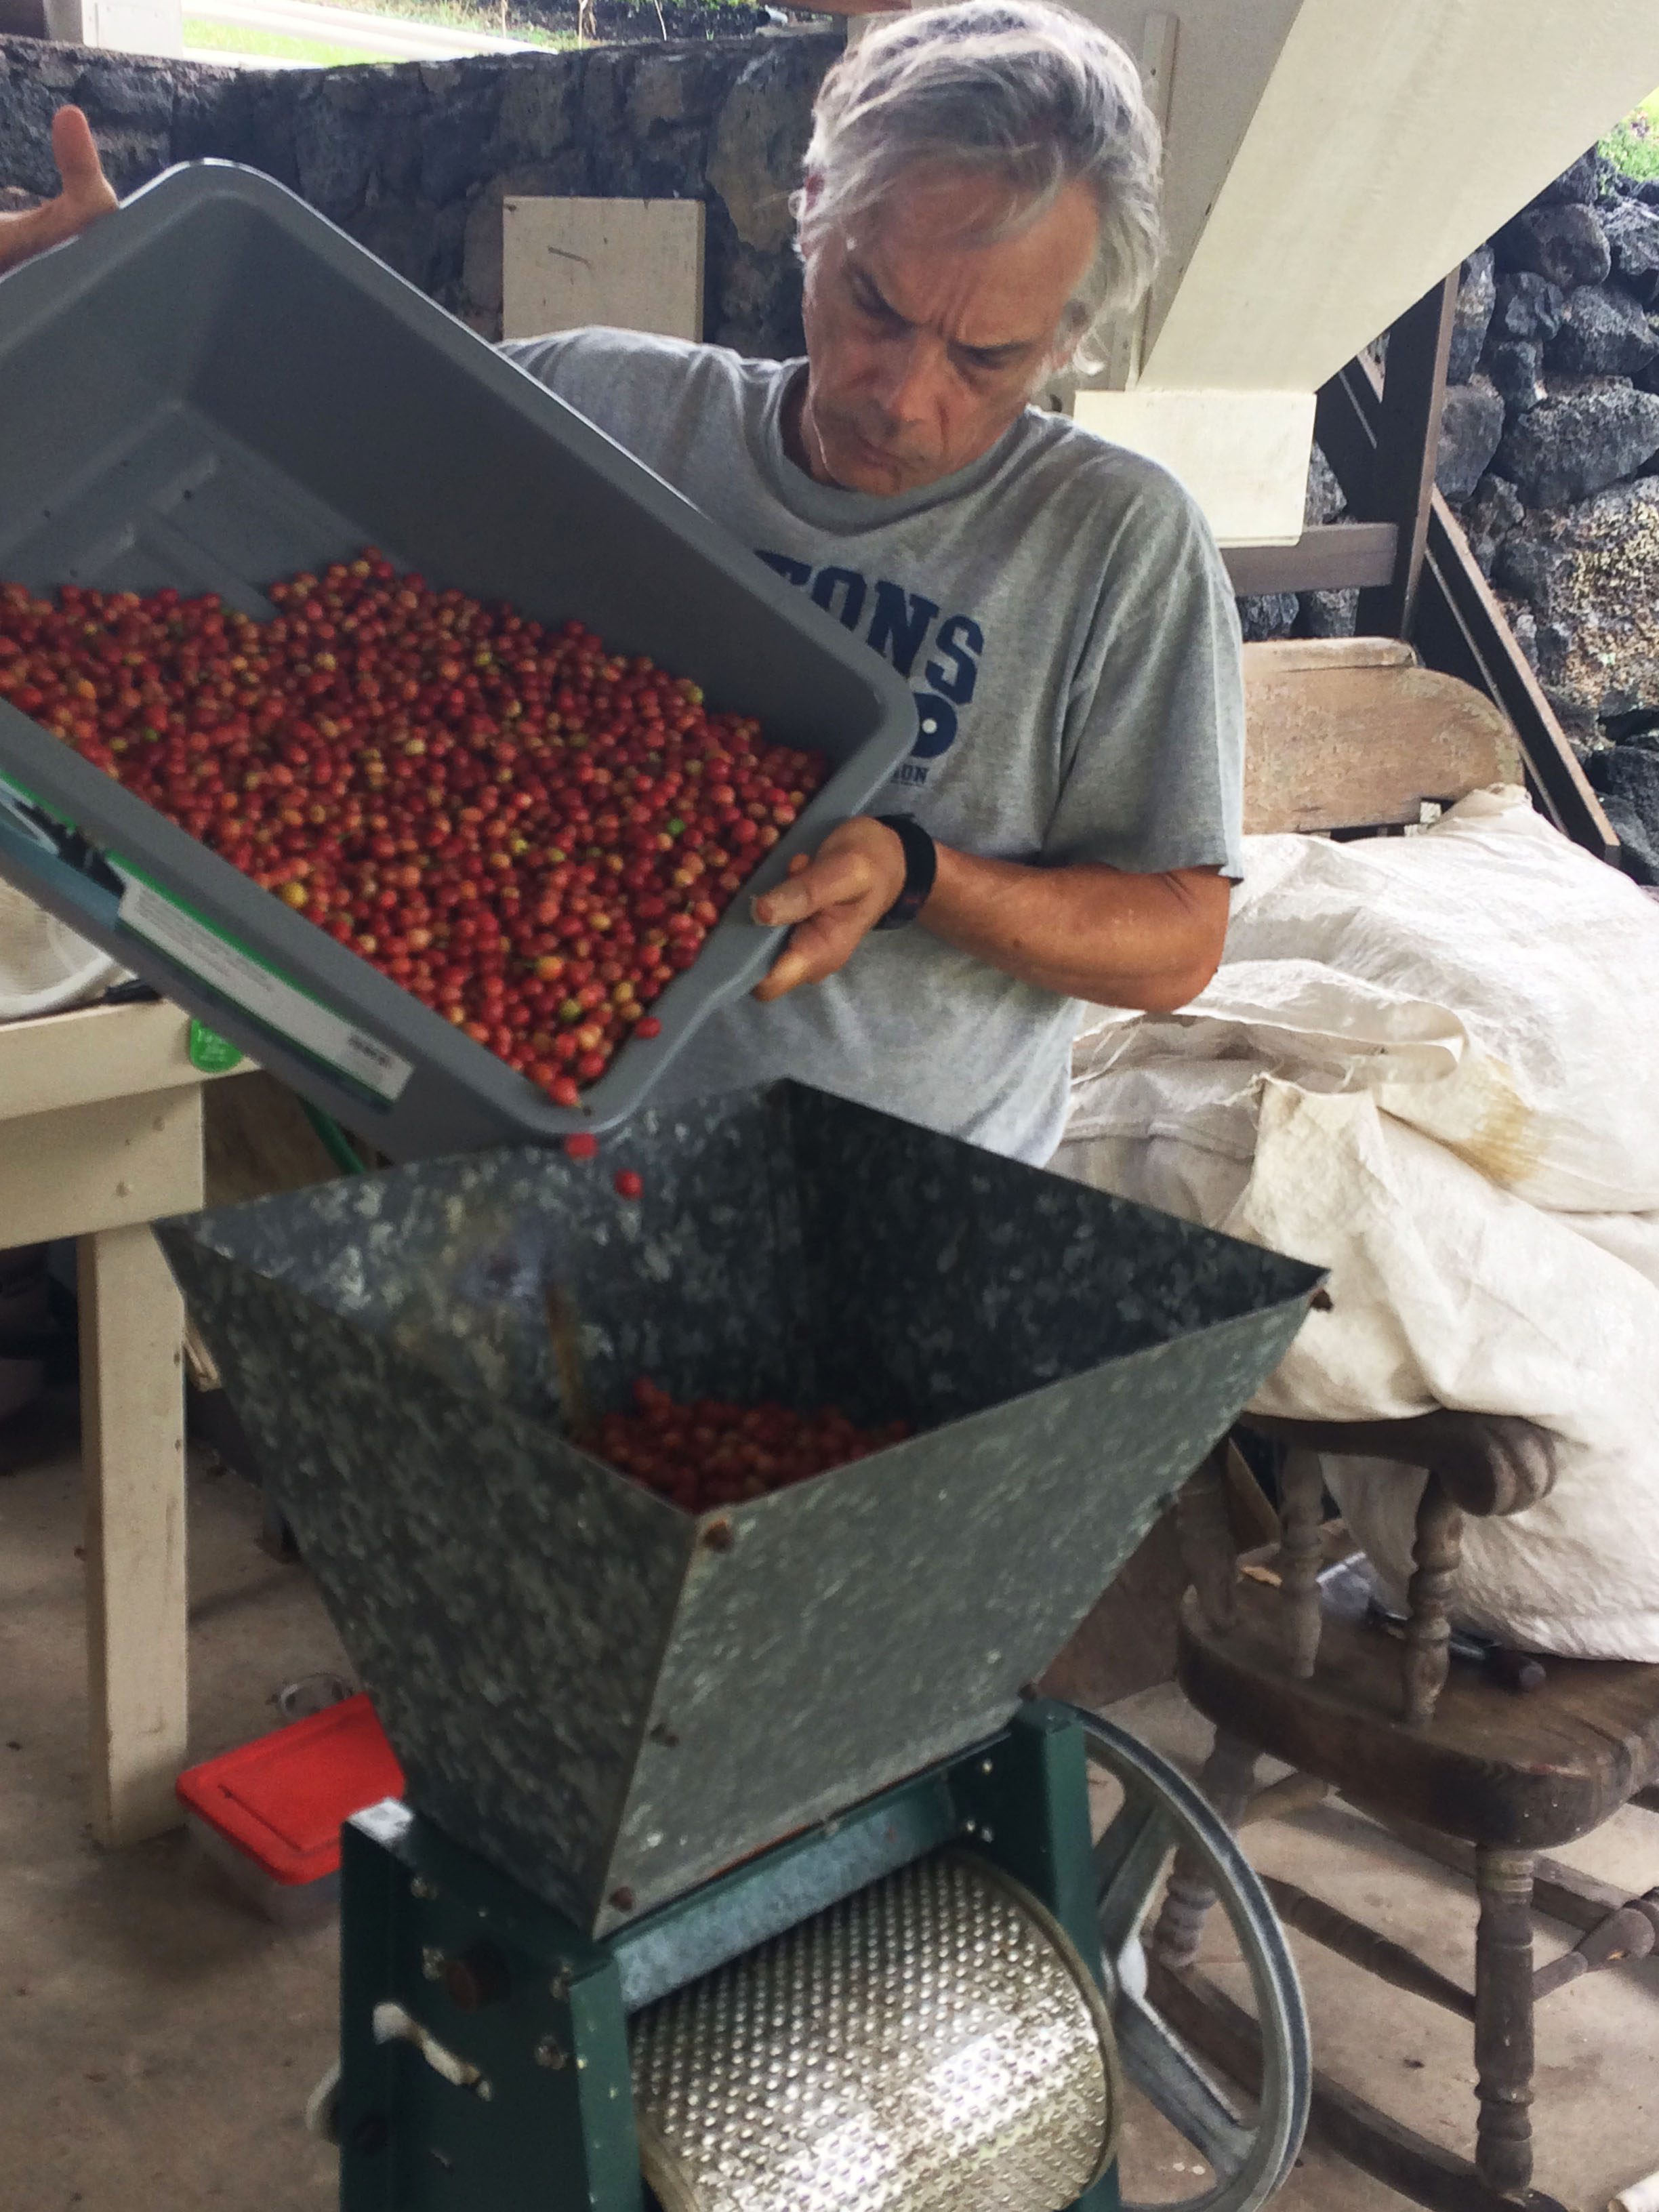 Into the pulping machine